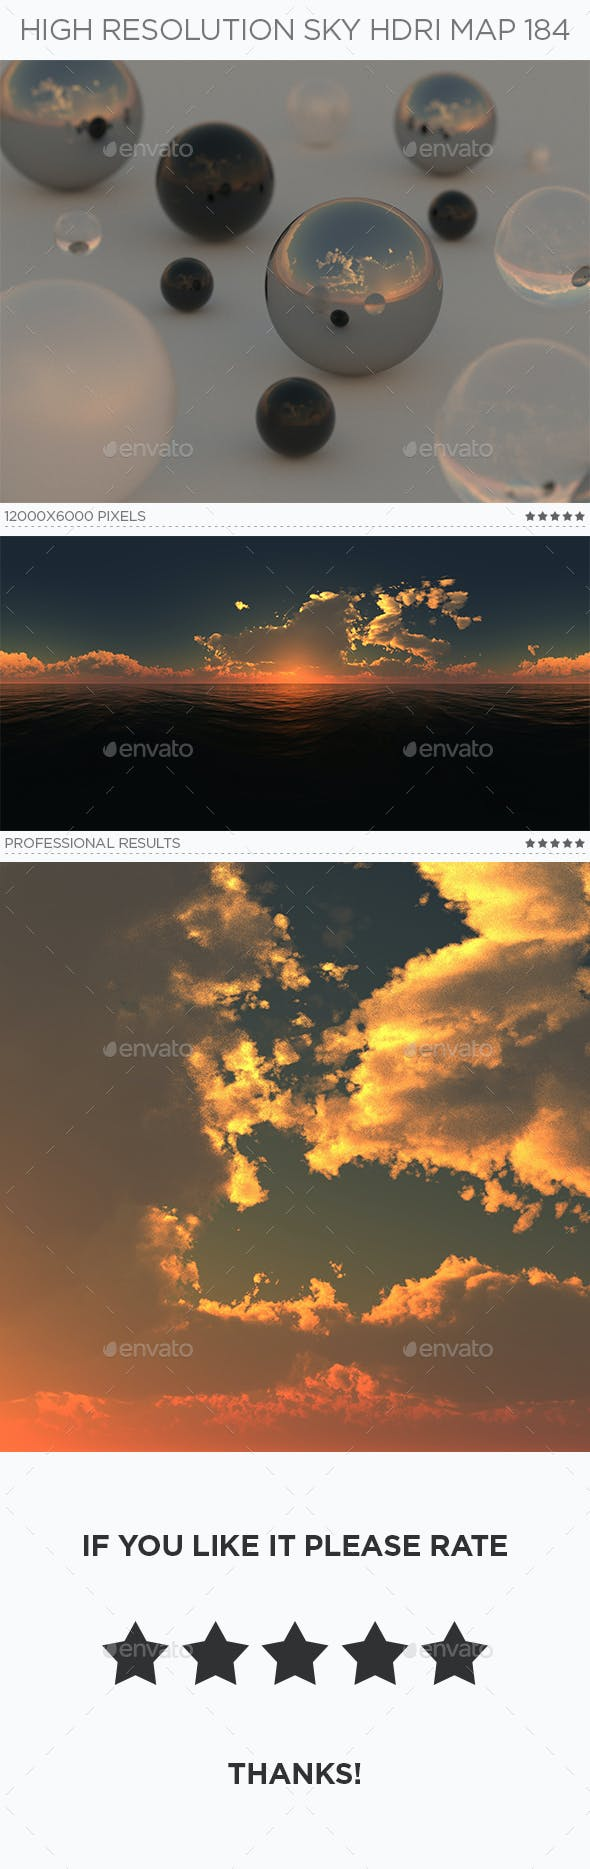 High Resolution Sky HDRi Map 184 - 3DOcean Item for Sale